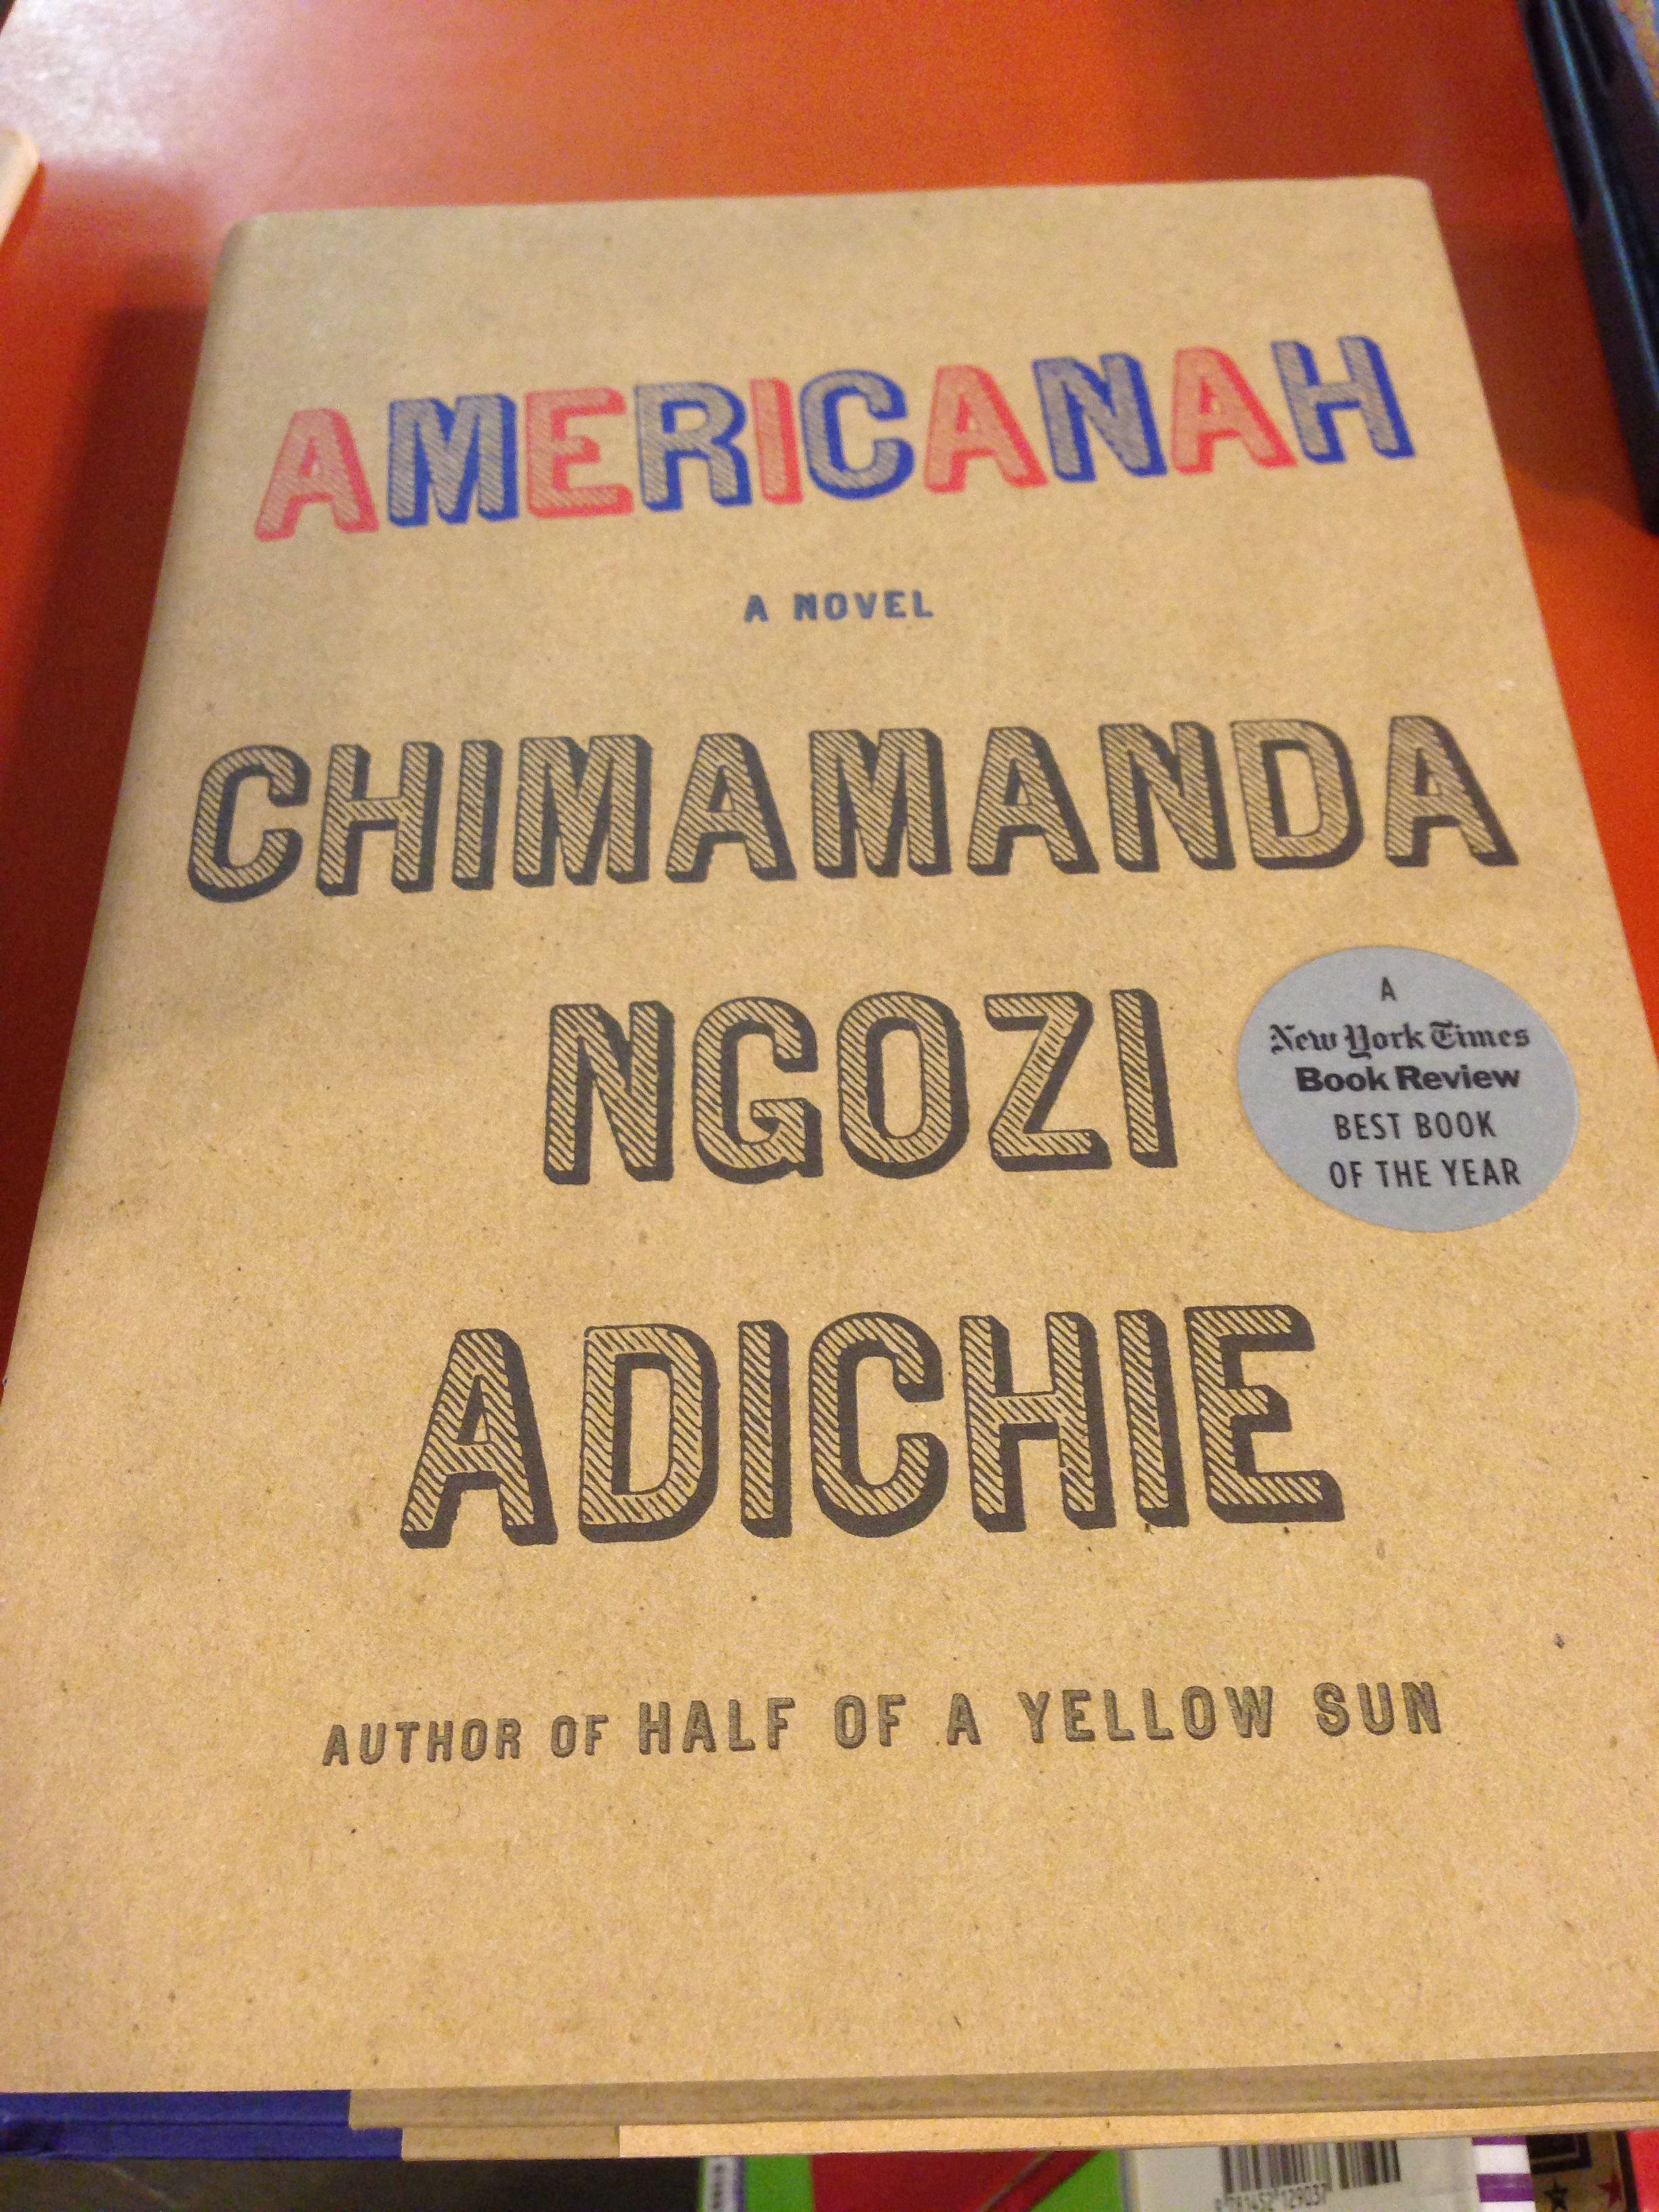 A great book written by one of the most renown African writer of our time, Chimanda Ngozi Adichie. Worthy your time and intellectual excitement.